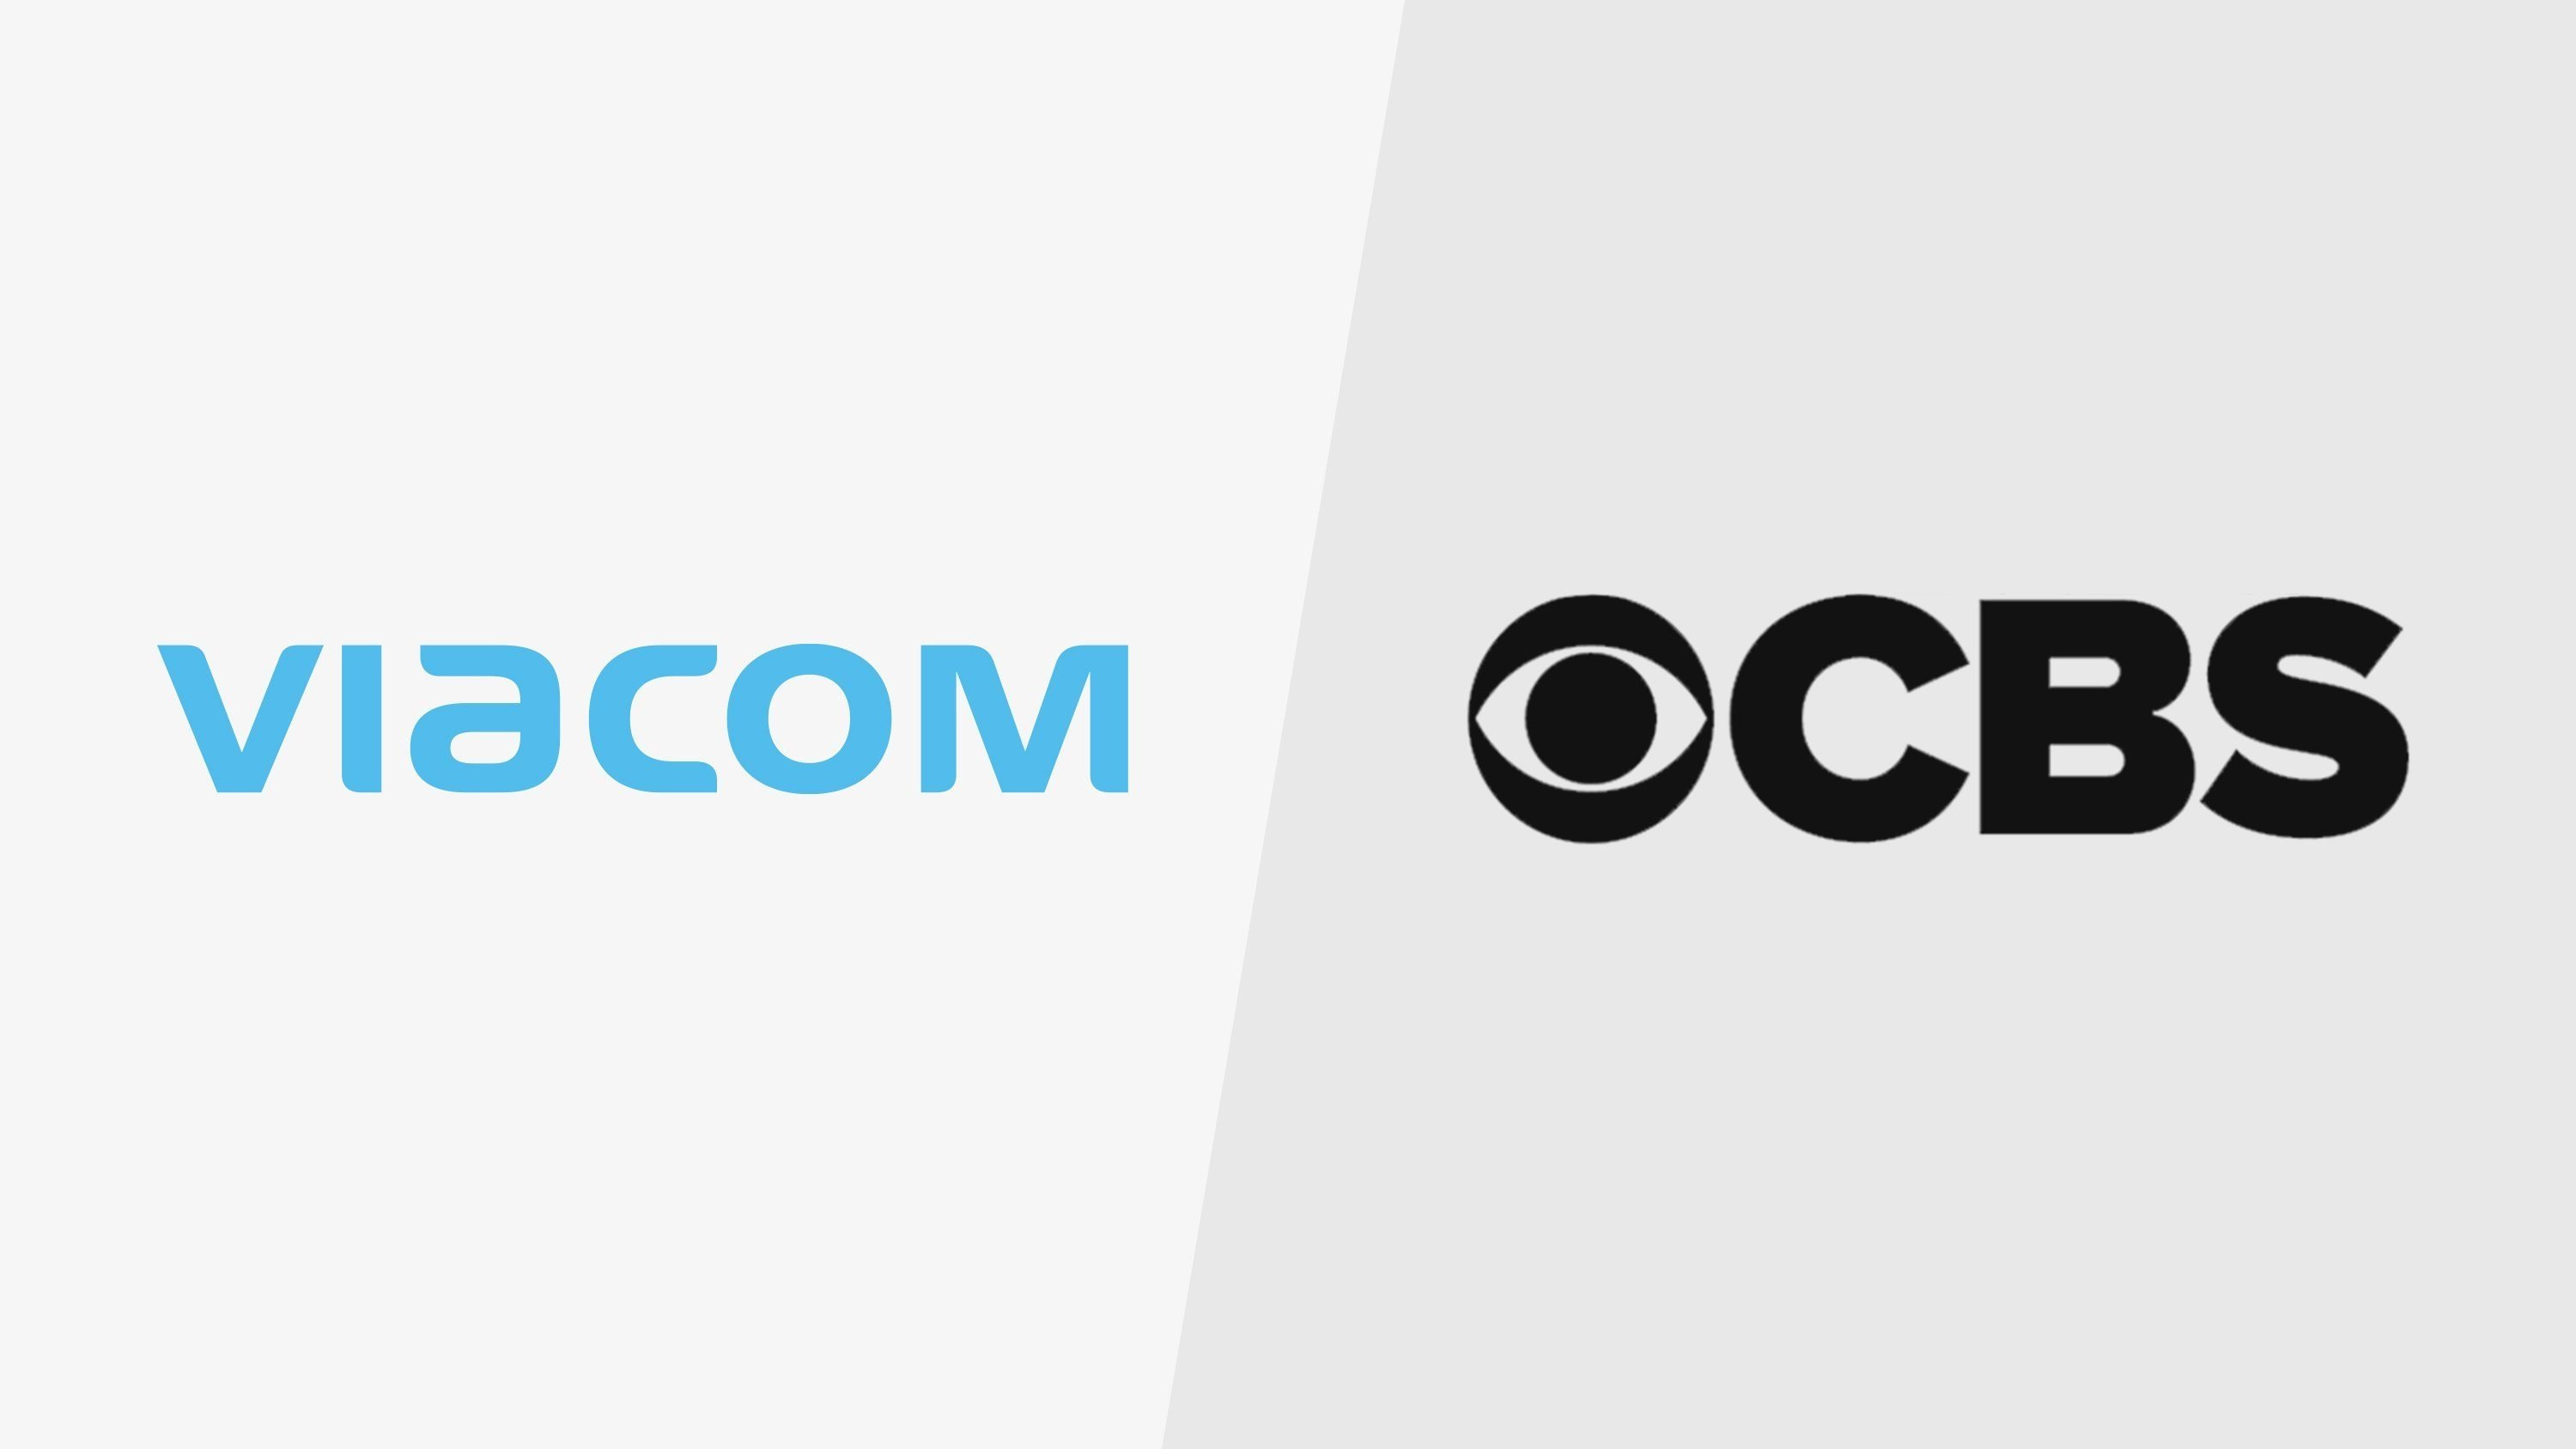 CBS sues key investor over Viacom merger